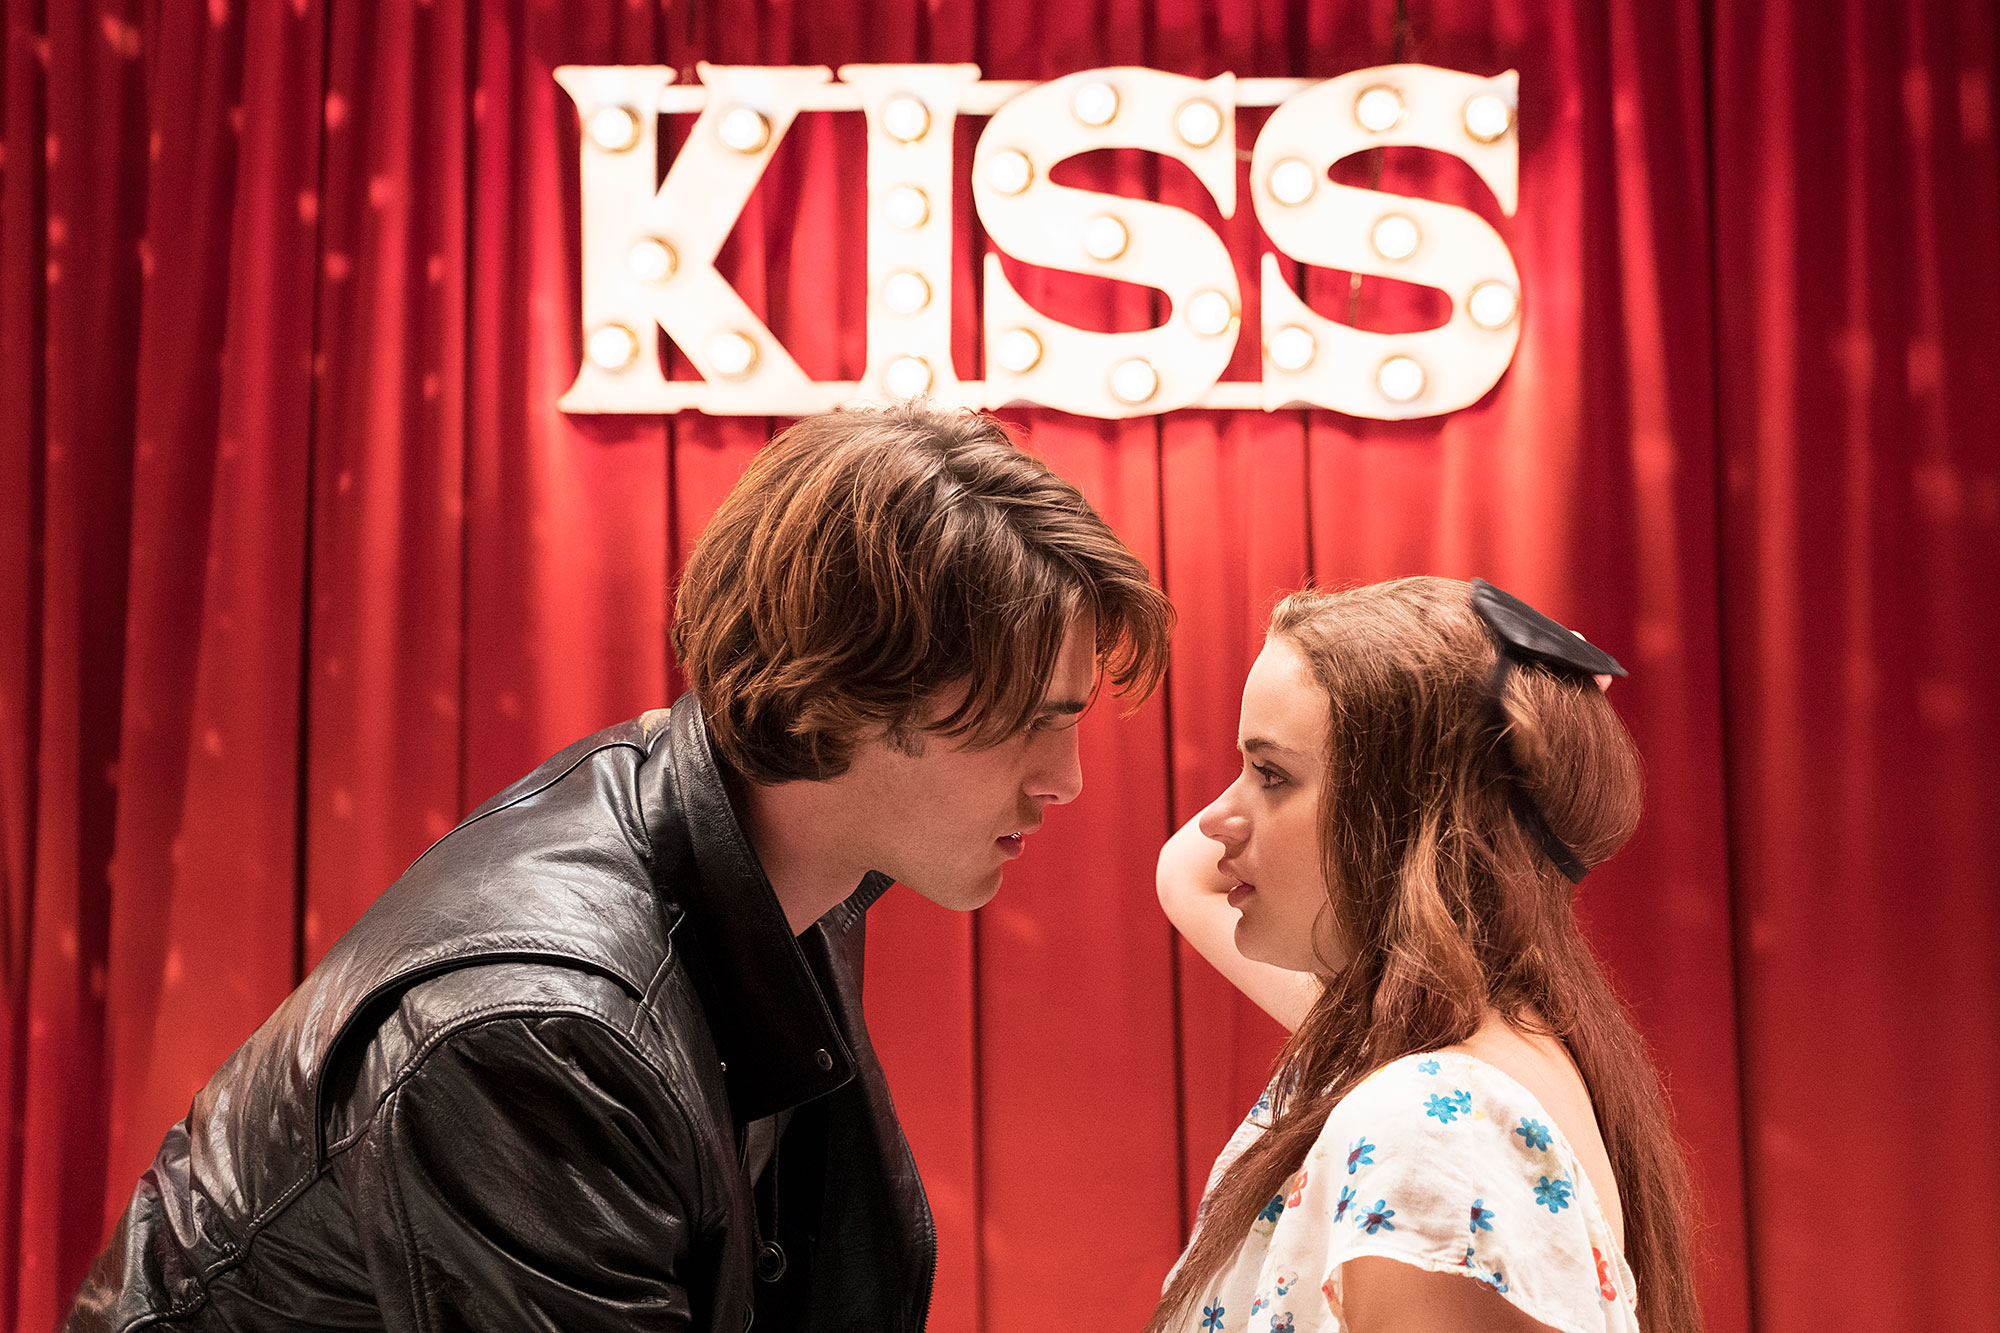 Jacob Elordi Joey King Split The Kissing Booth